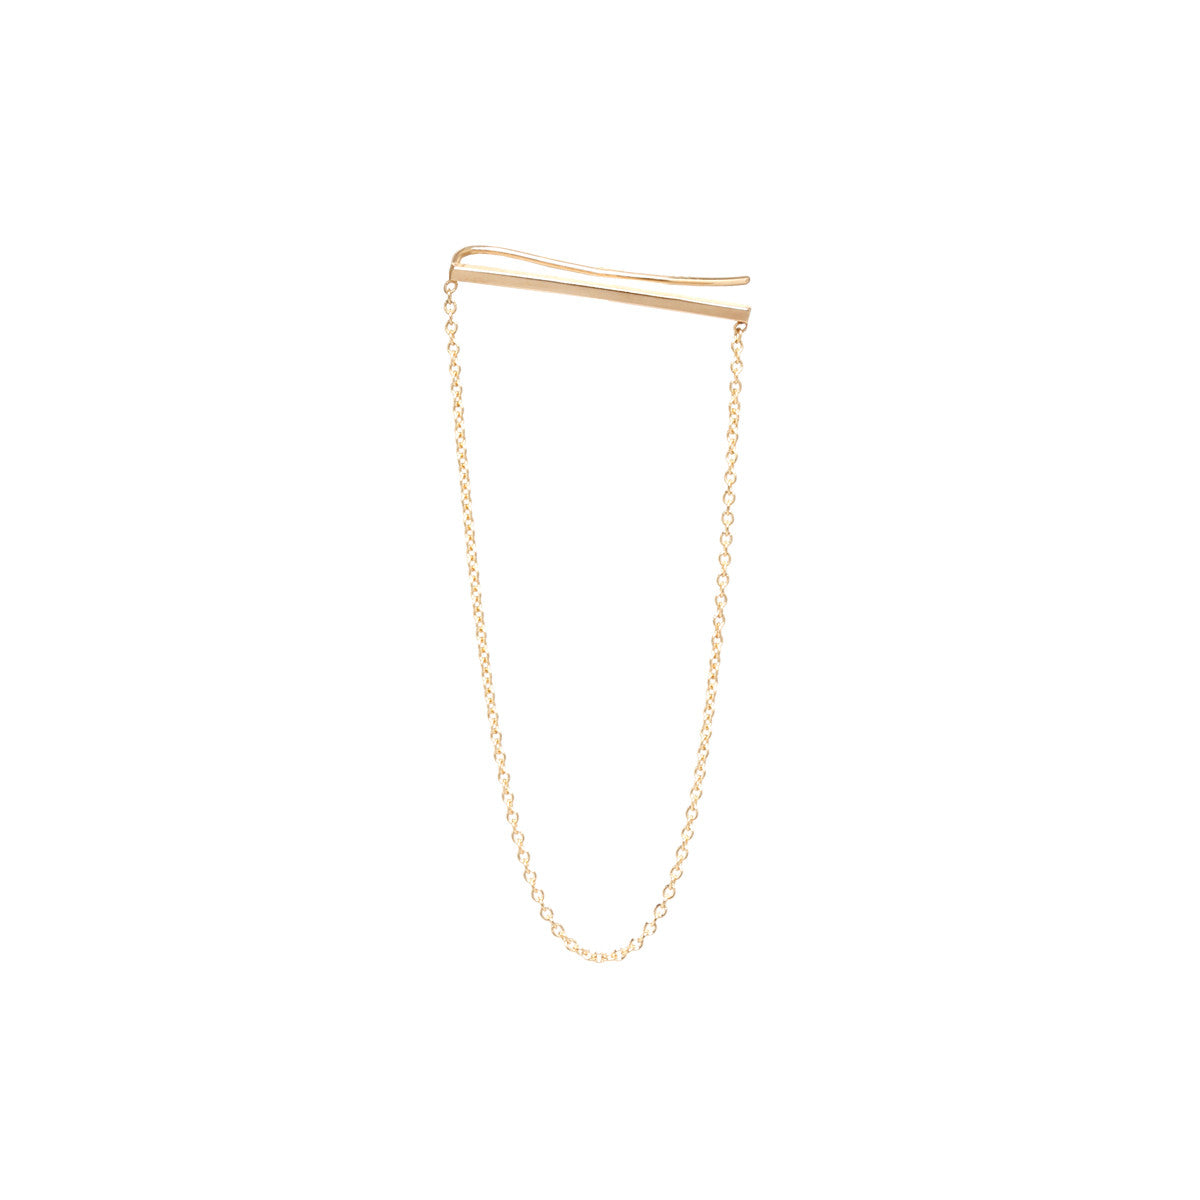 14k ear shield with hanging chain